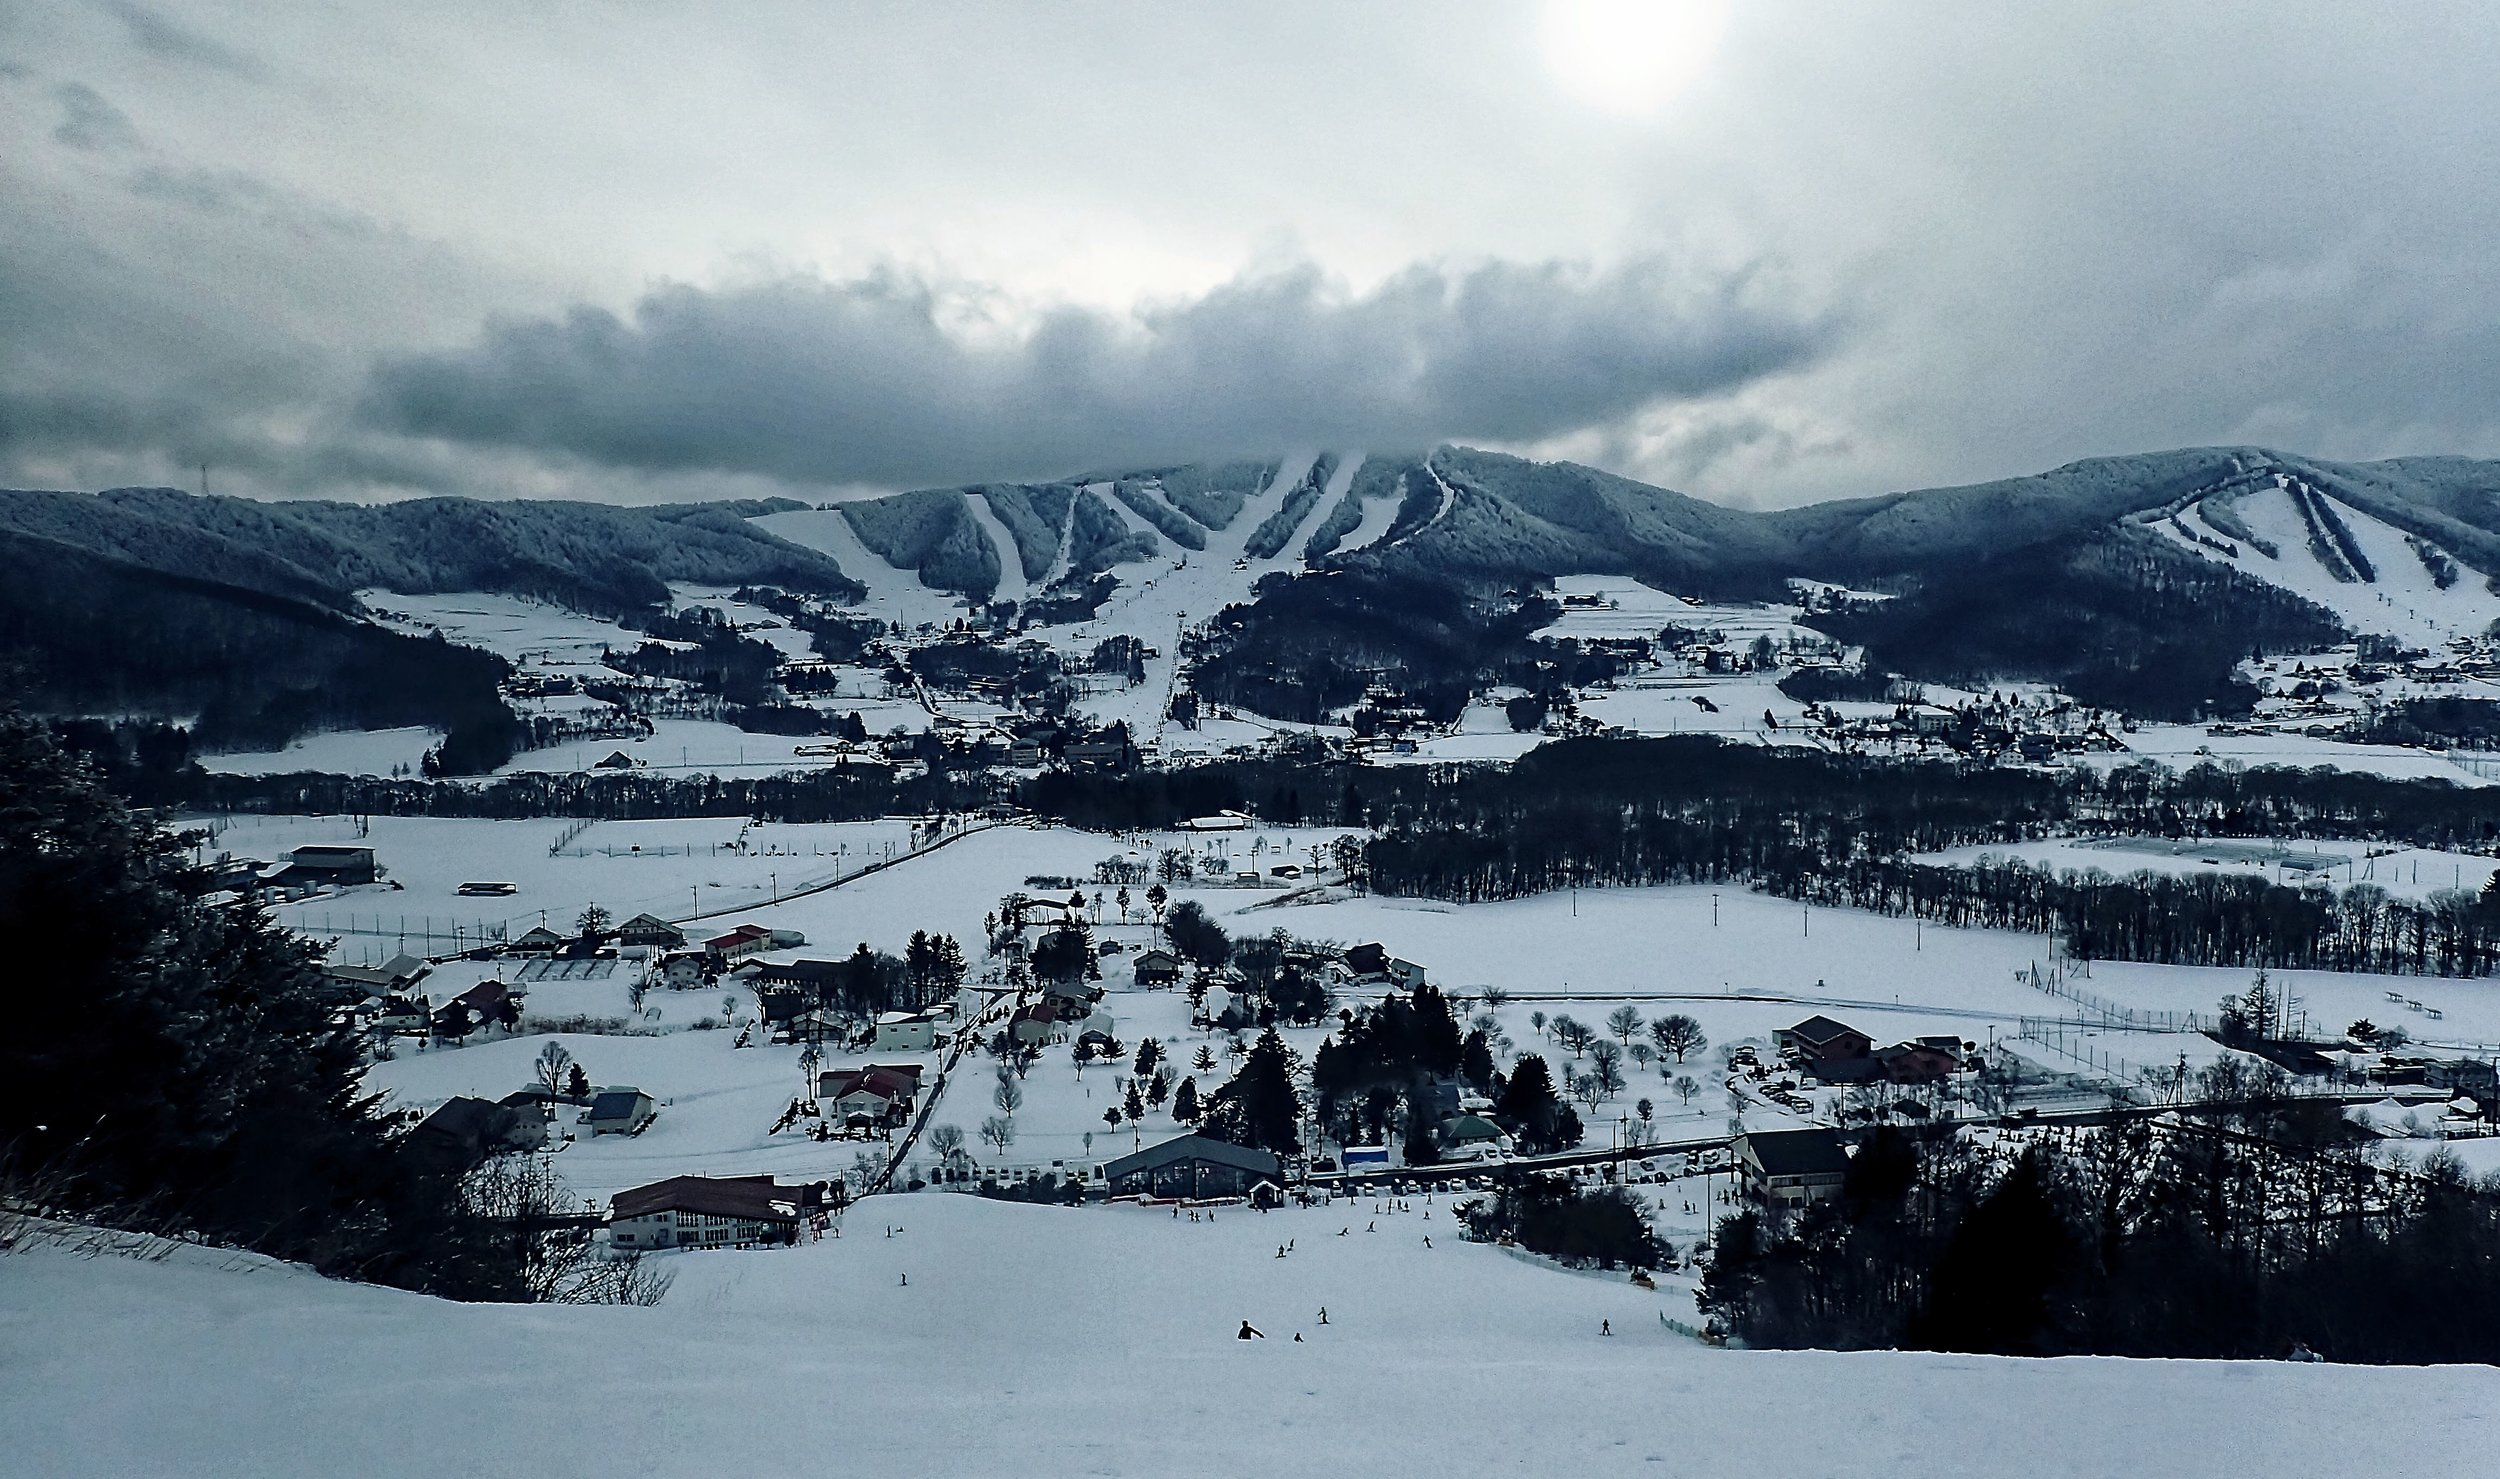 Amazing views of the surrounding slopes in Sugadaira, Nagano